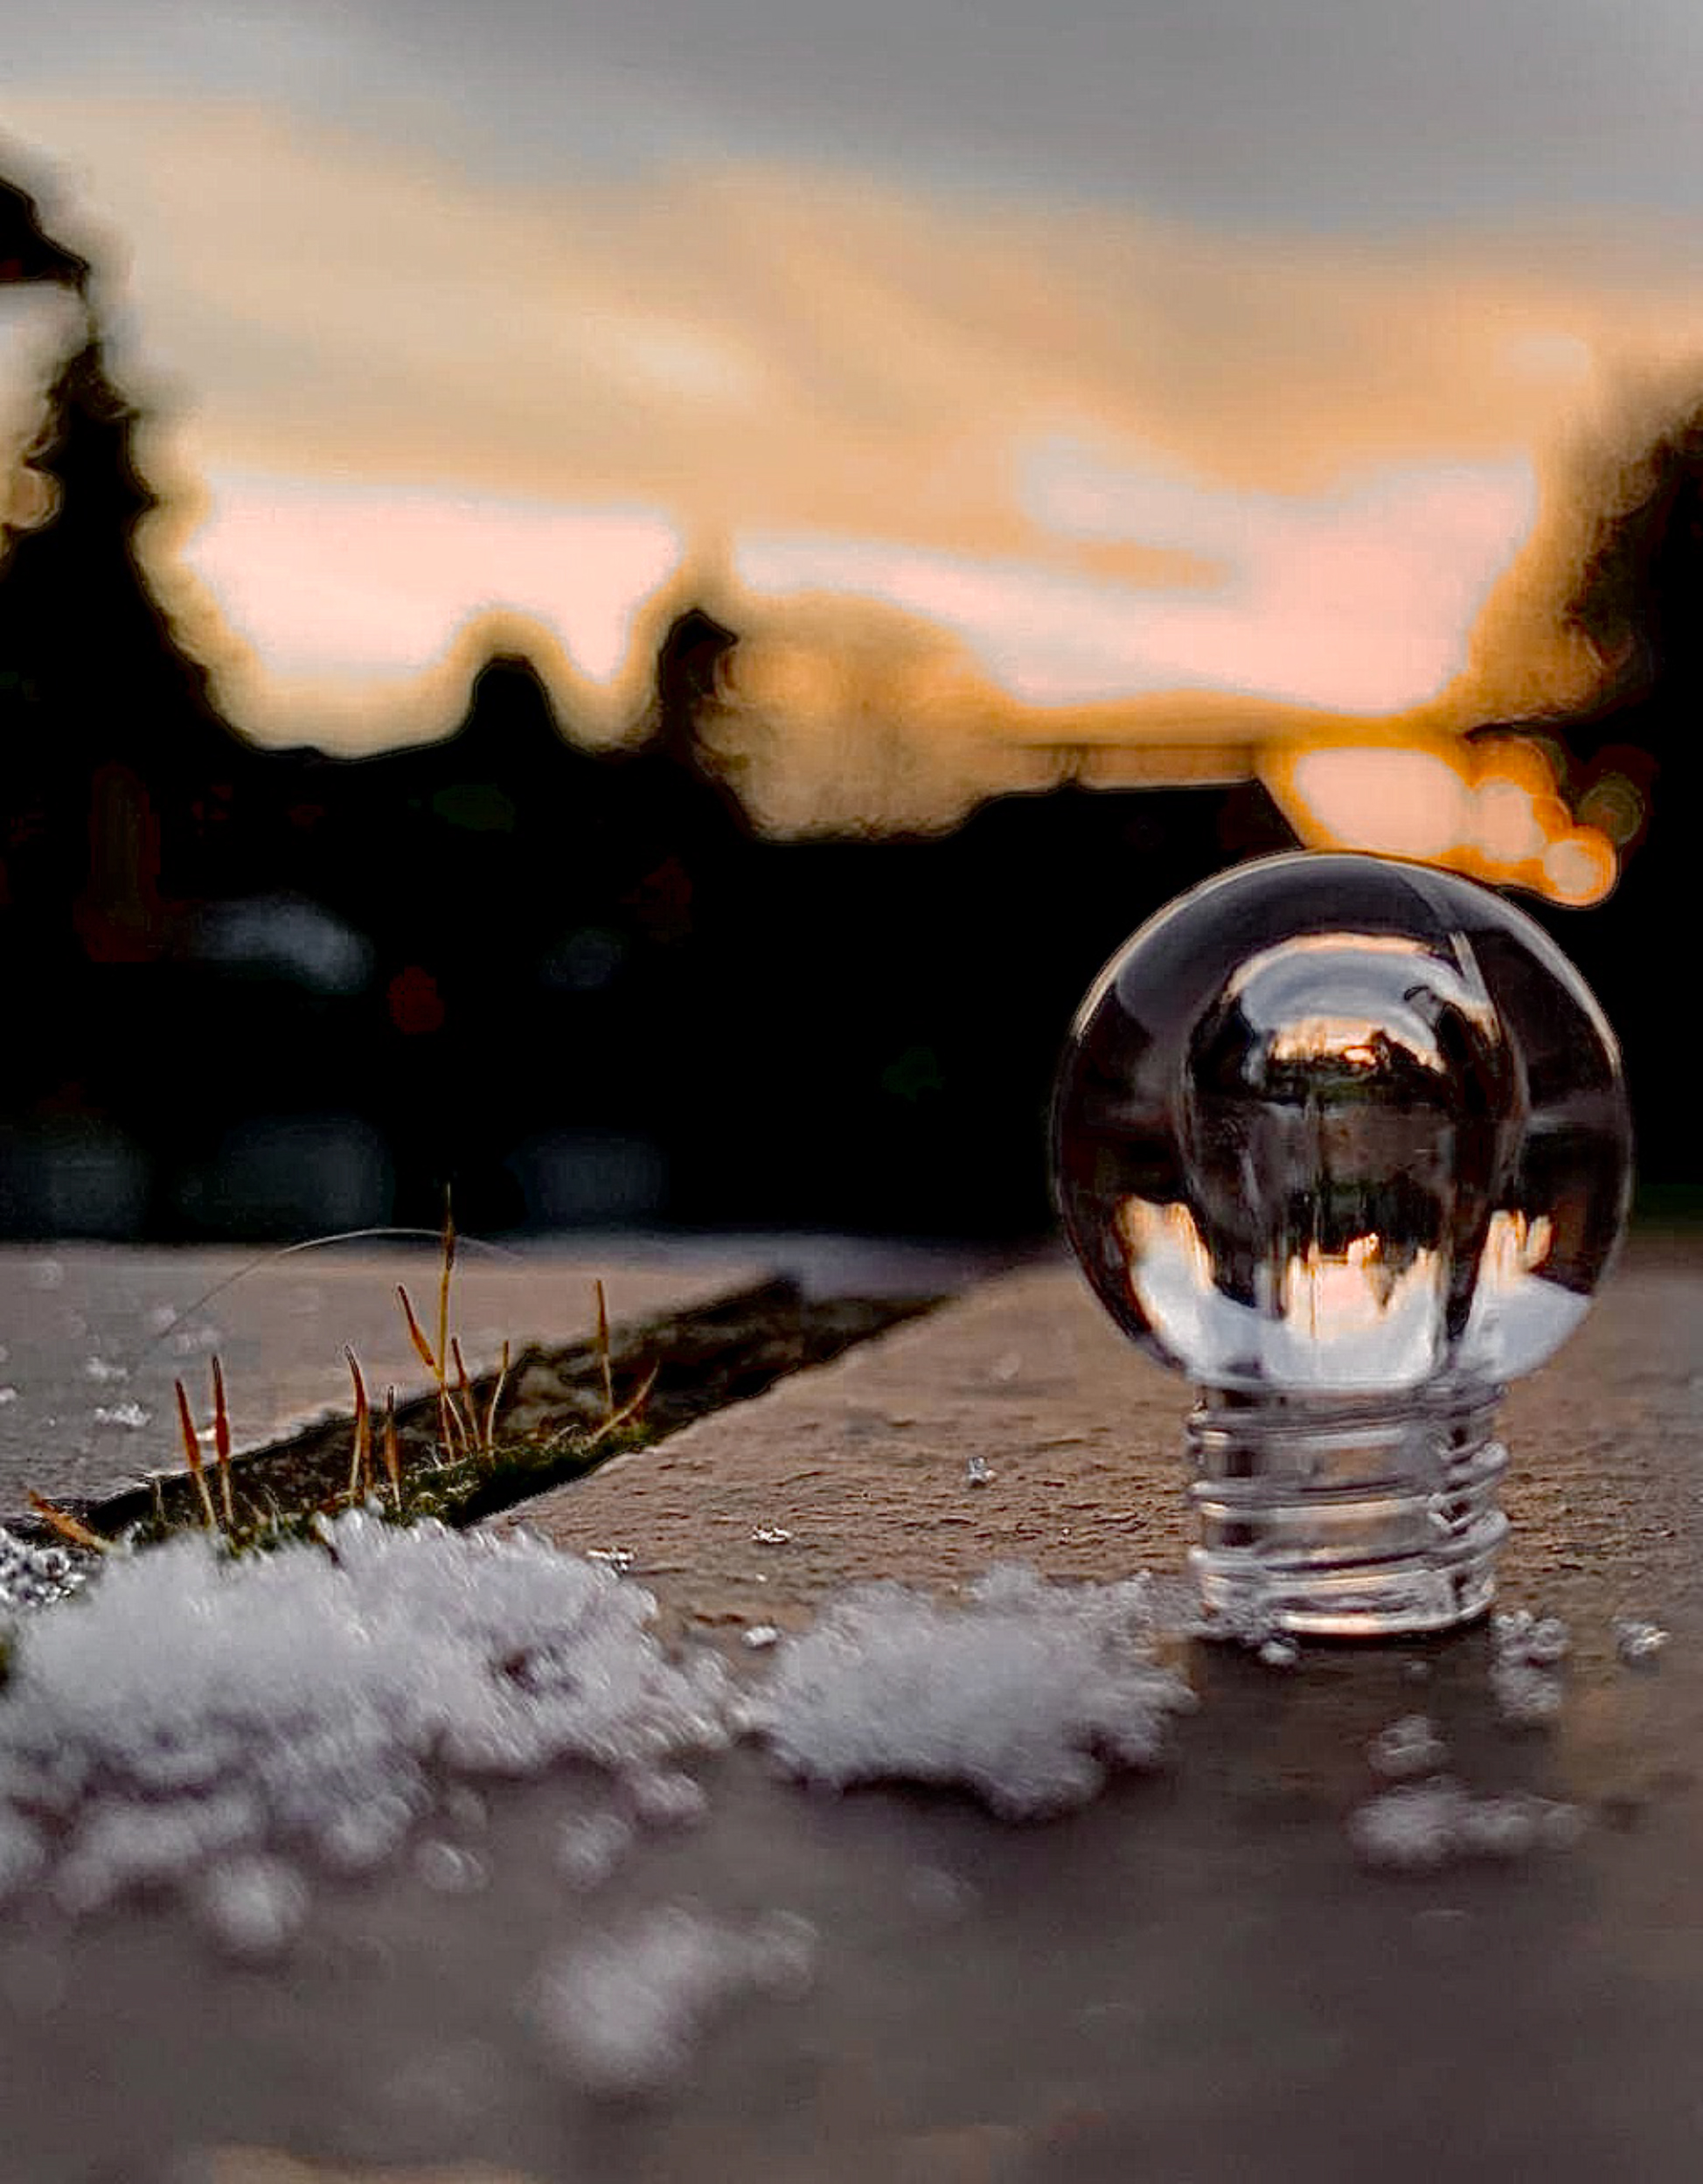 Kirklees College photography competition entry